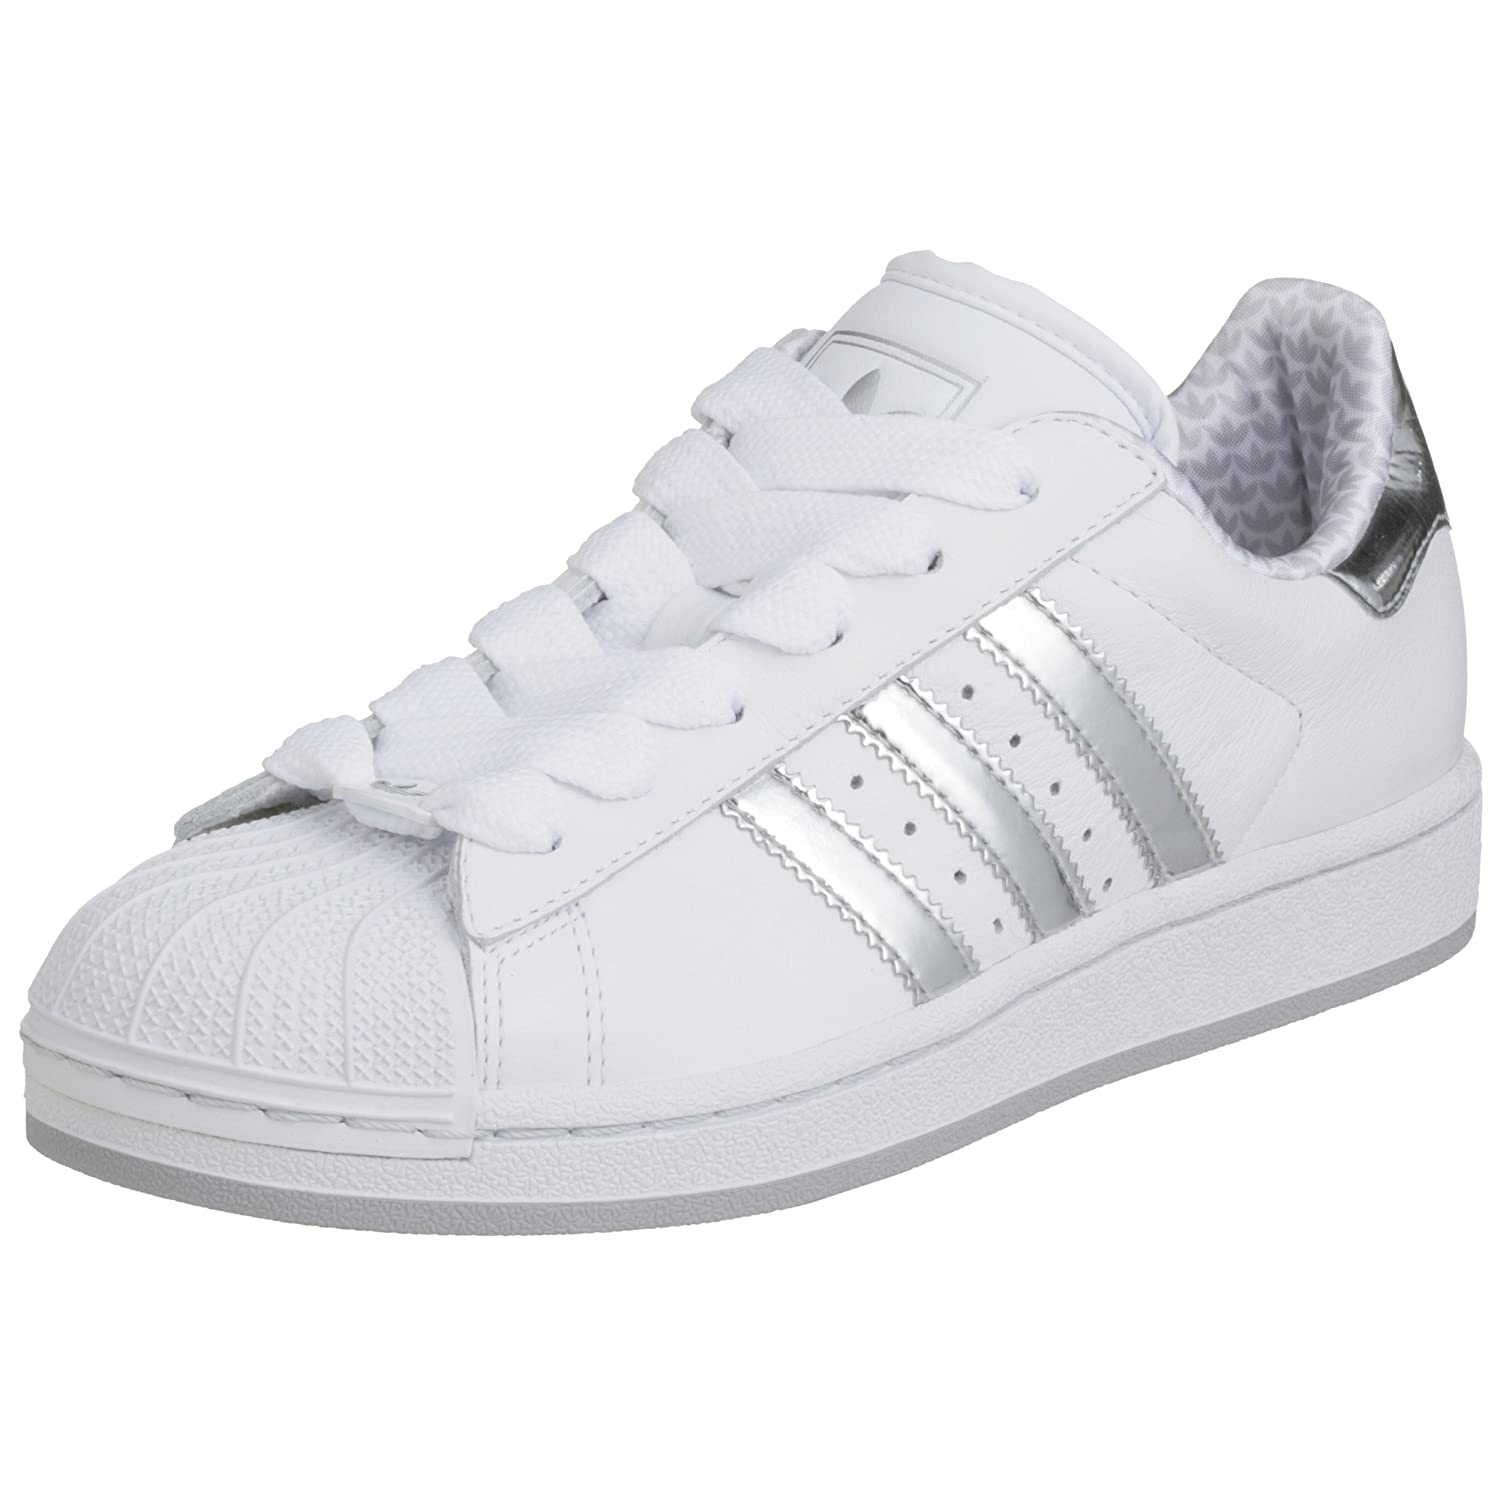 womens white & silver adidas superstar trainers | schuh